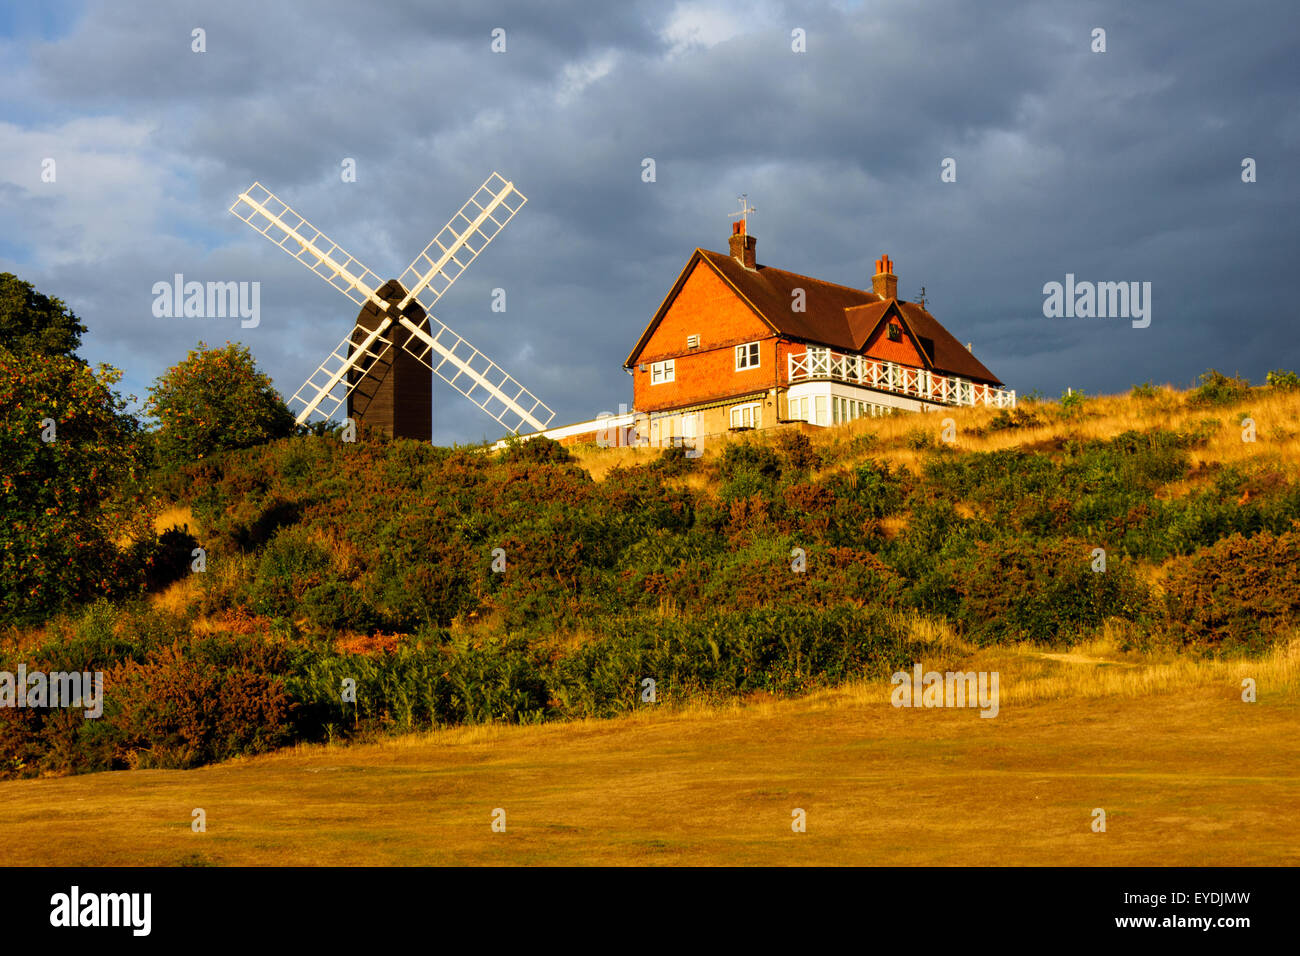 Reigate Heath Golf Course Clubhouse and Windmill, Surrey England United Kingdom - Stock Image